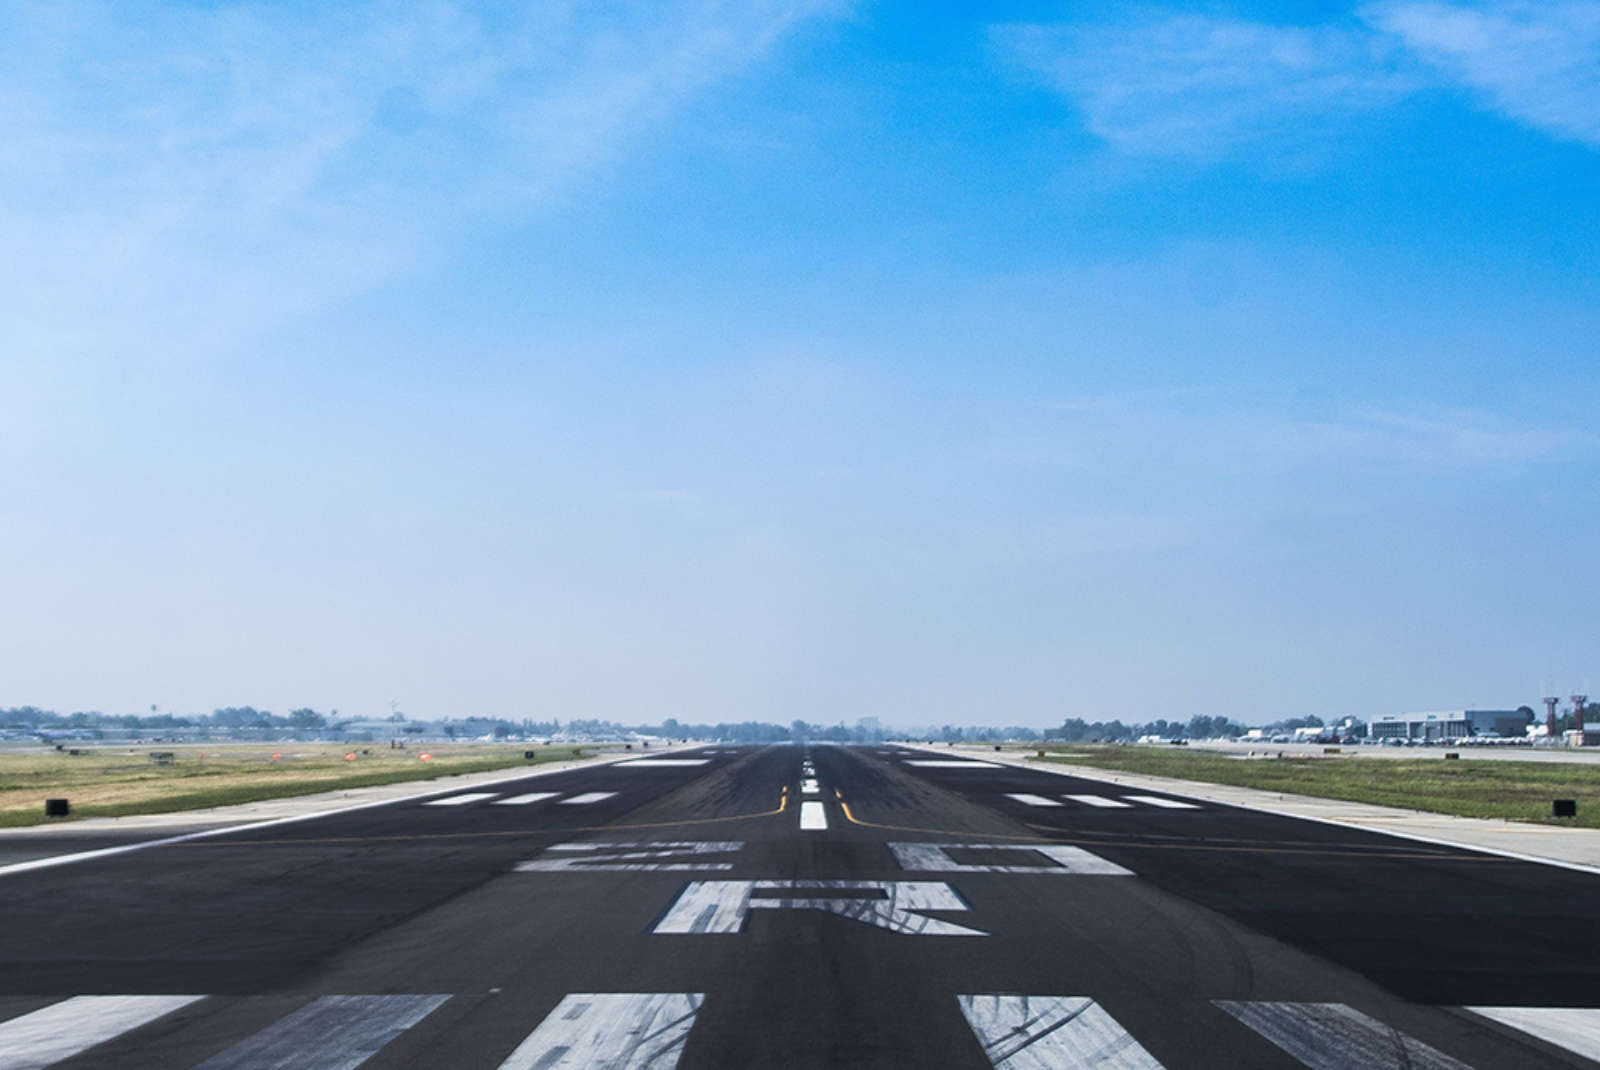 Underneath a bright blue sky, an airplane runway leads off into the horizon, providing a space to land.